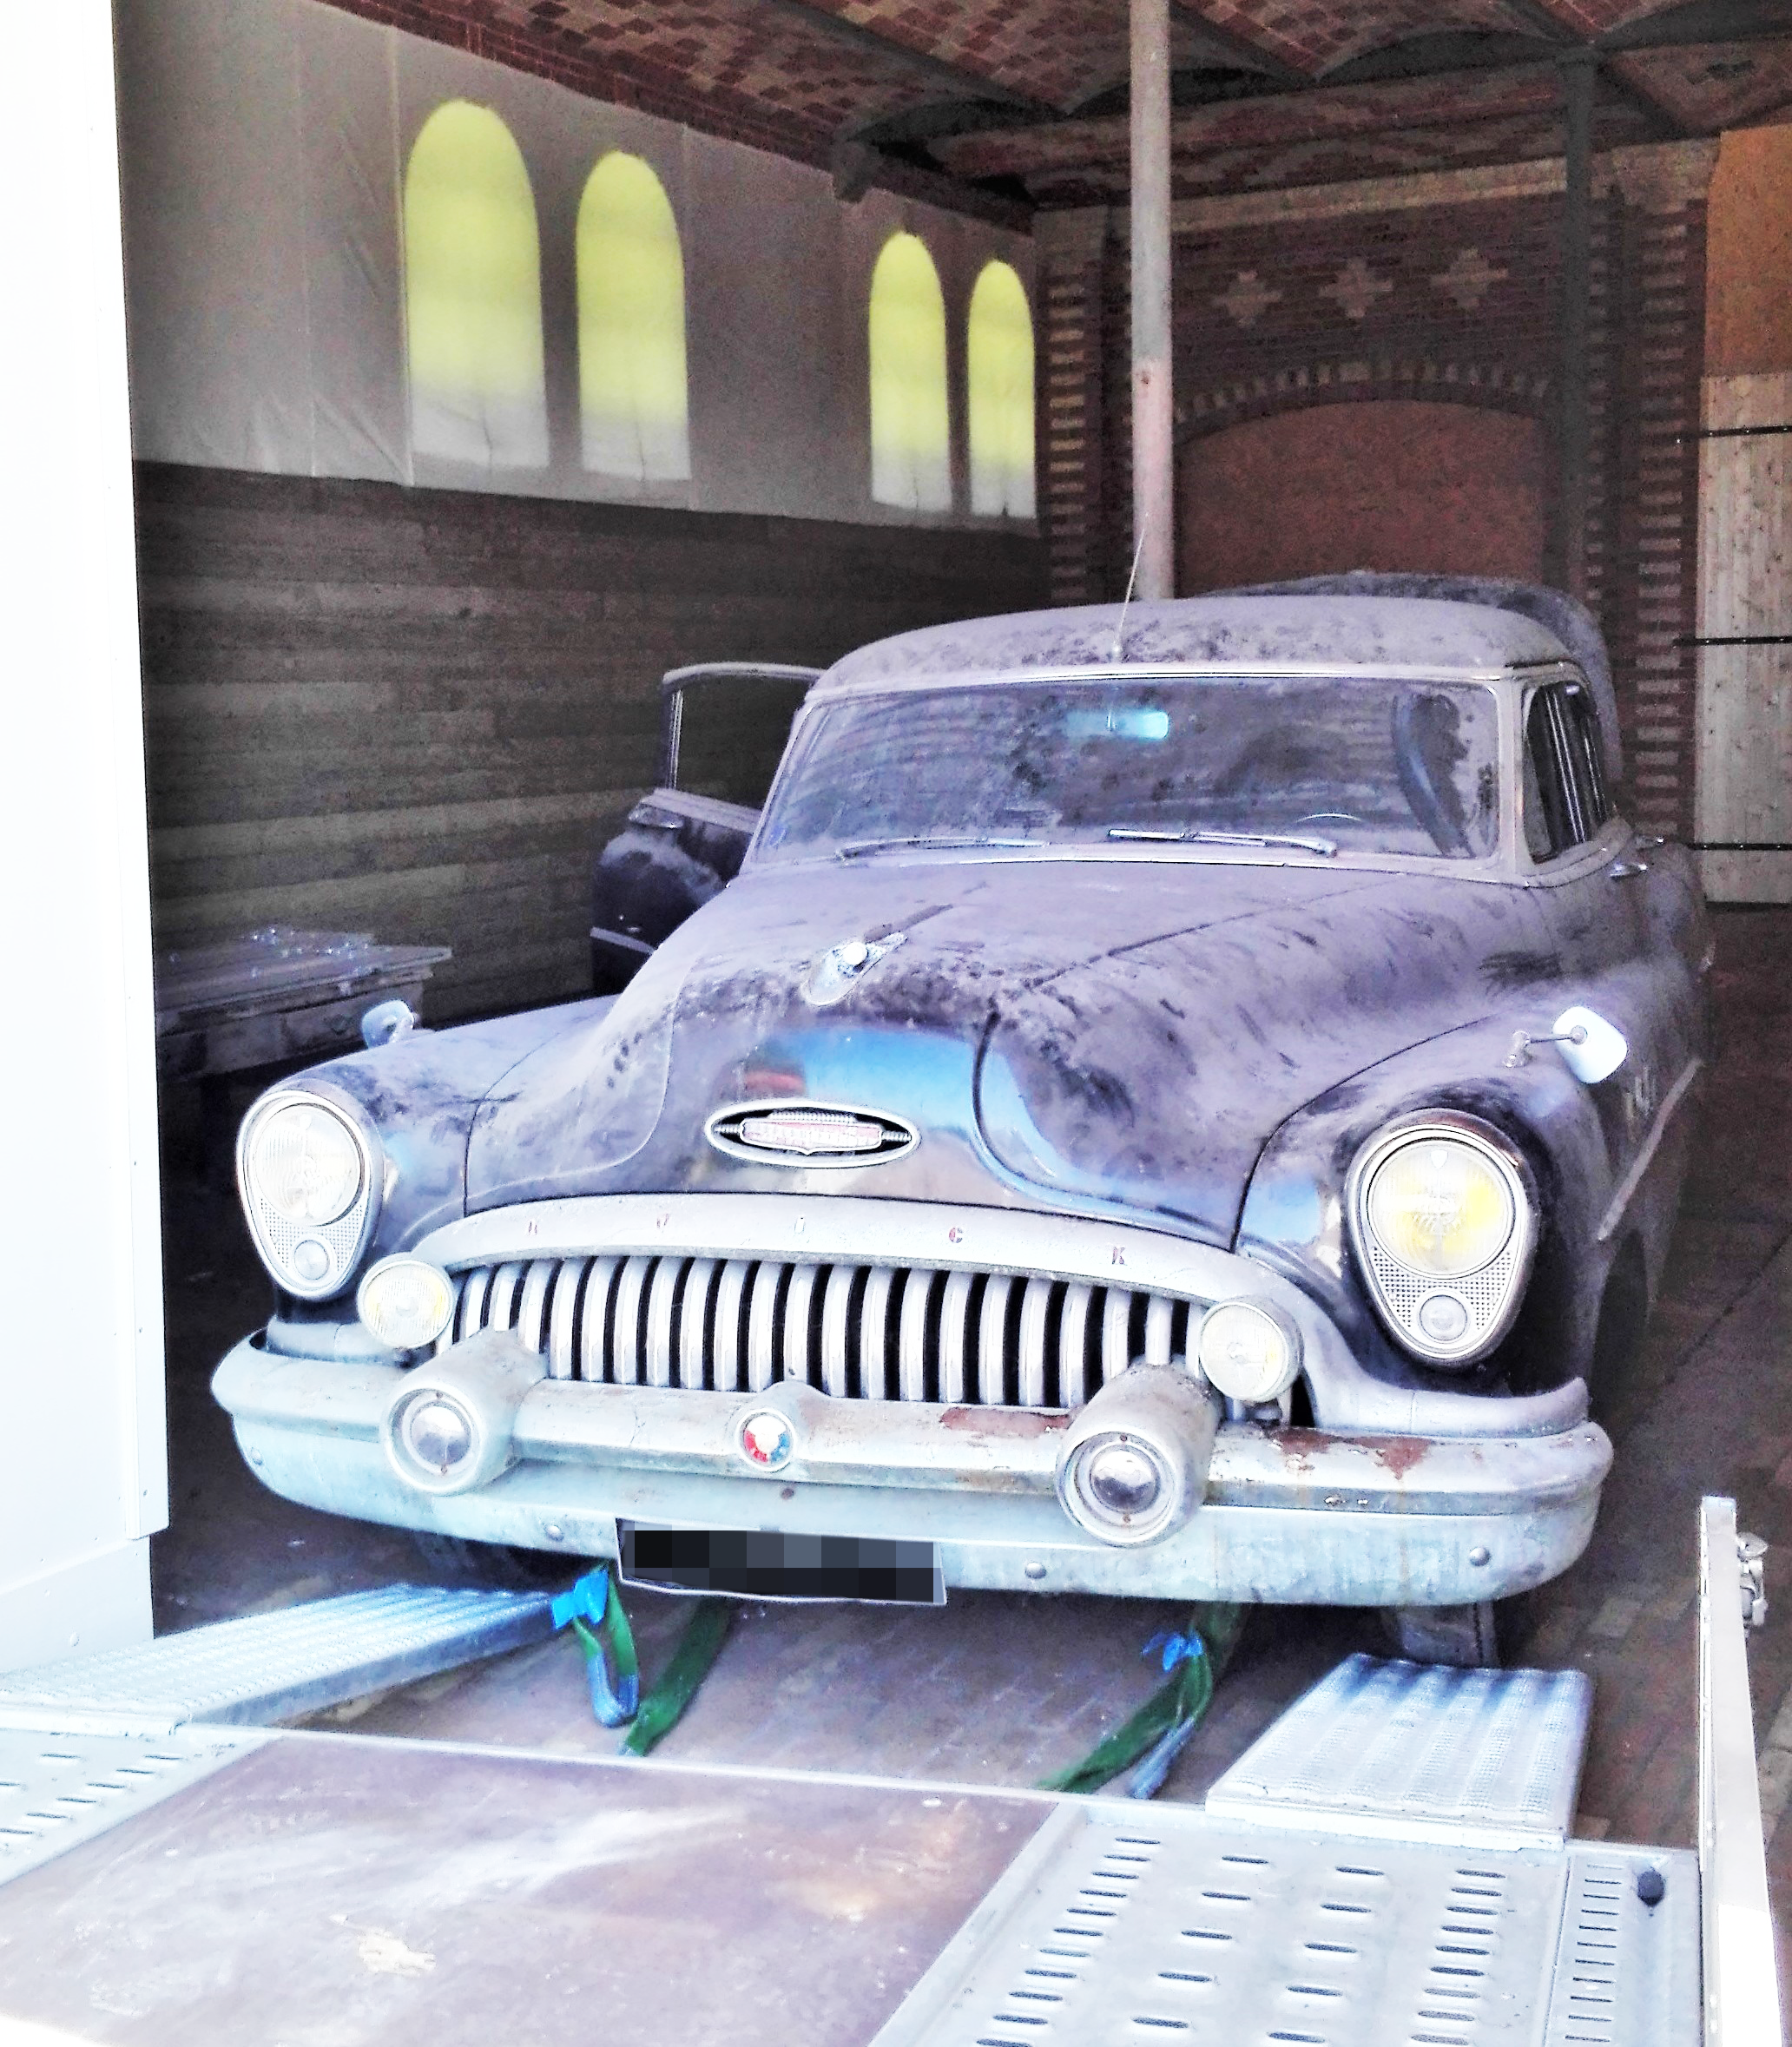 BUICK SUPER SEDAN ETIENNE TRANSPORT ET PLUS SPECIALISTE TRANSPORT DE VEHICULE UNITAIRE